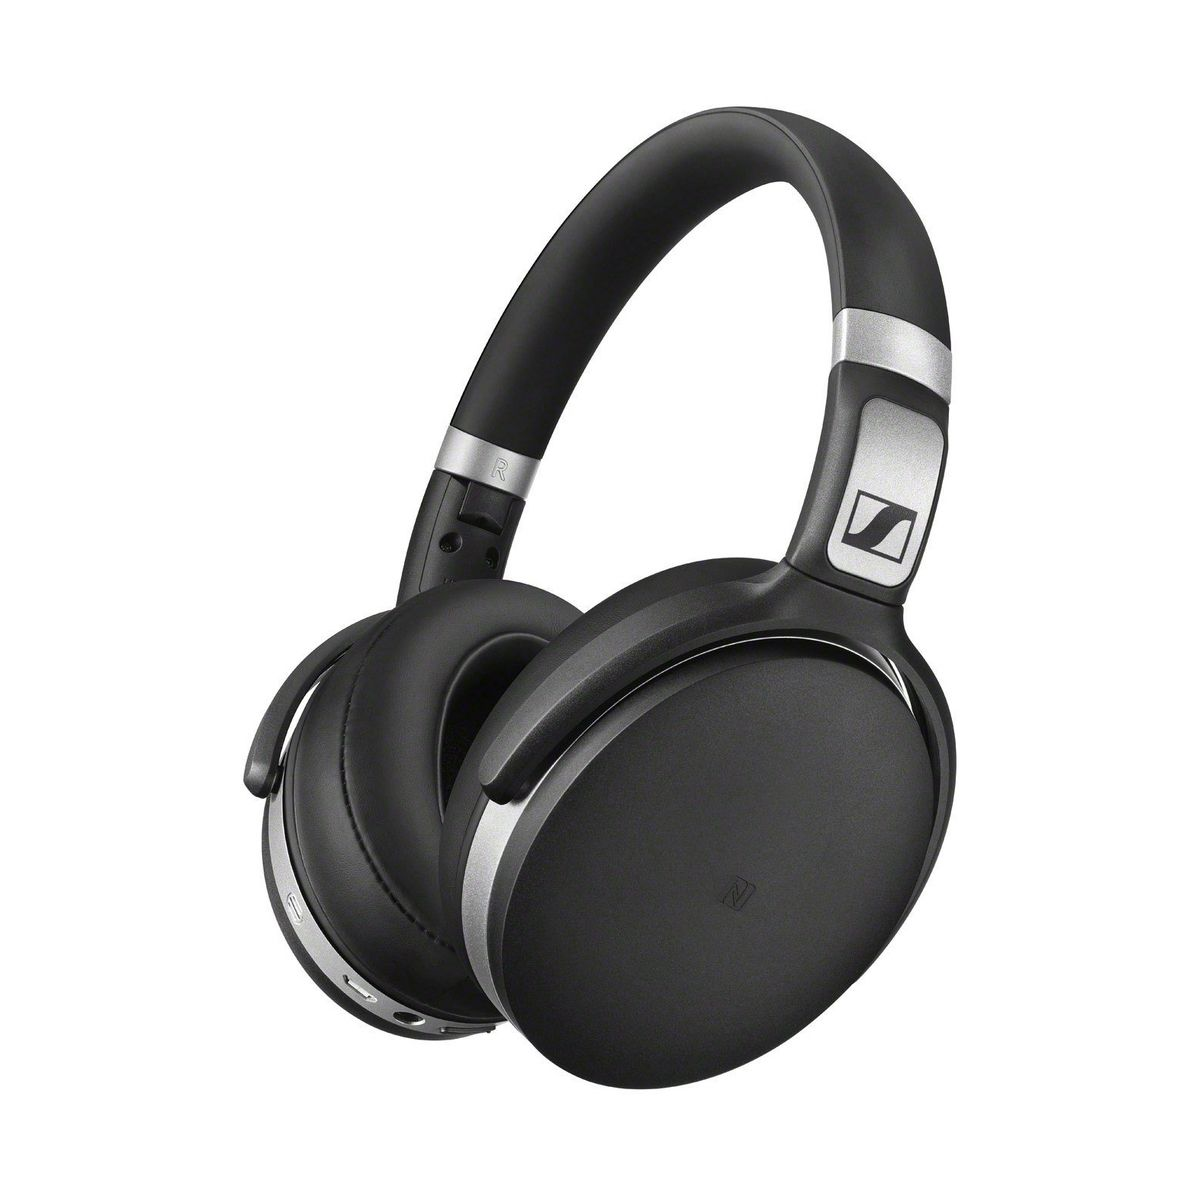 Casque audio sans fil HD 4.50 BTNC Wireless - Noir